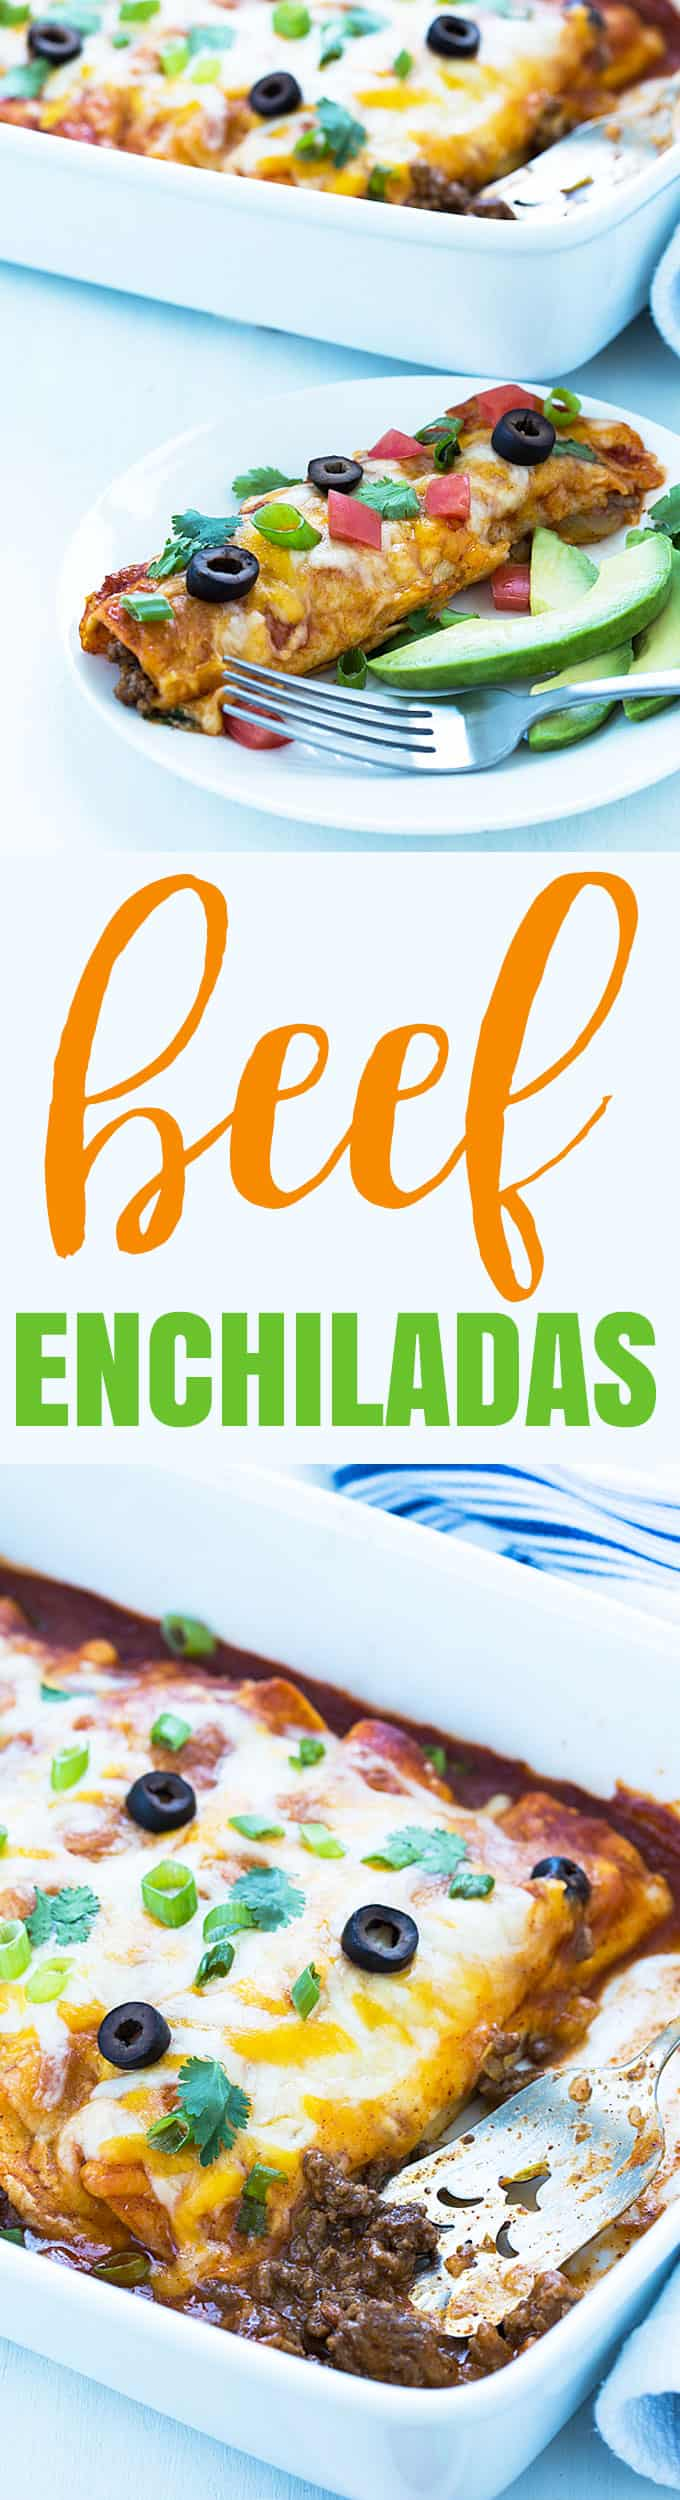 A two image vertical collage of easy beef enchiladas with overlay text in the center.